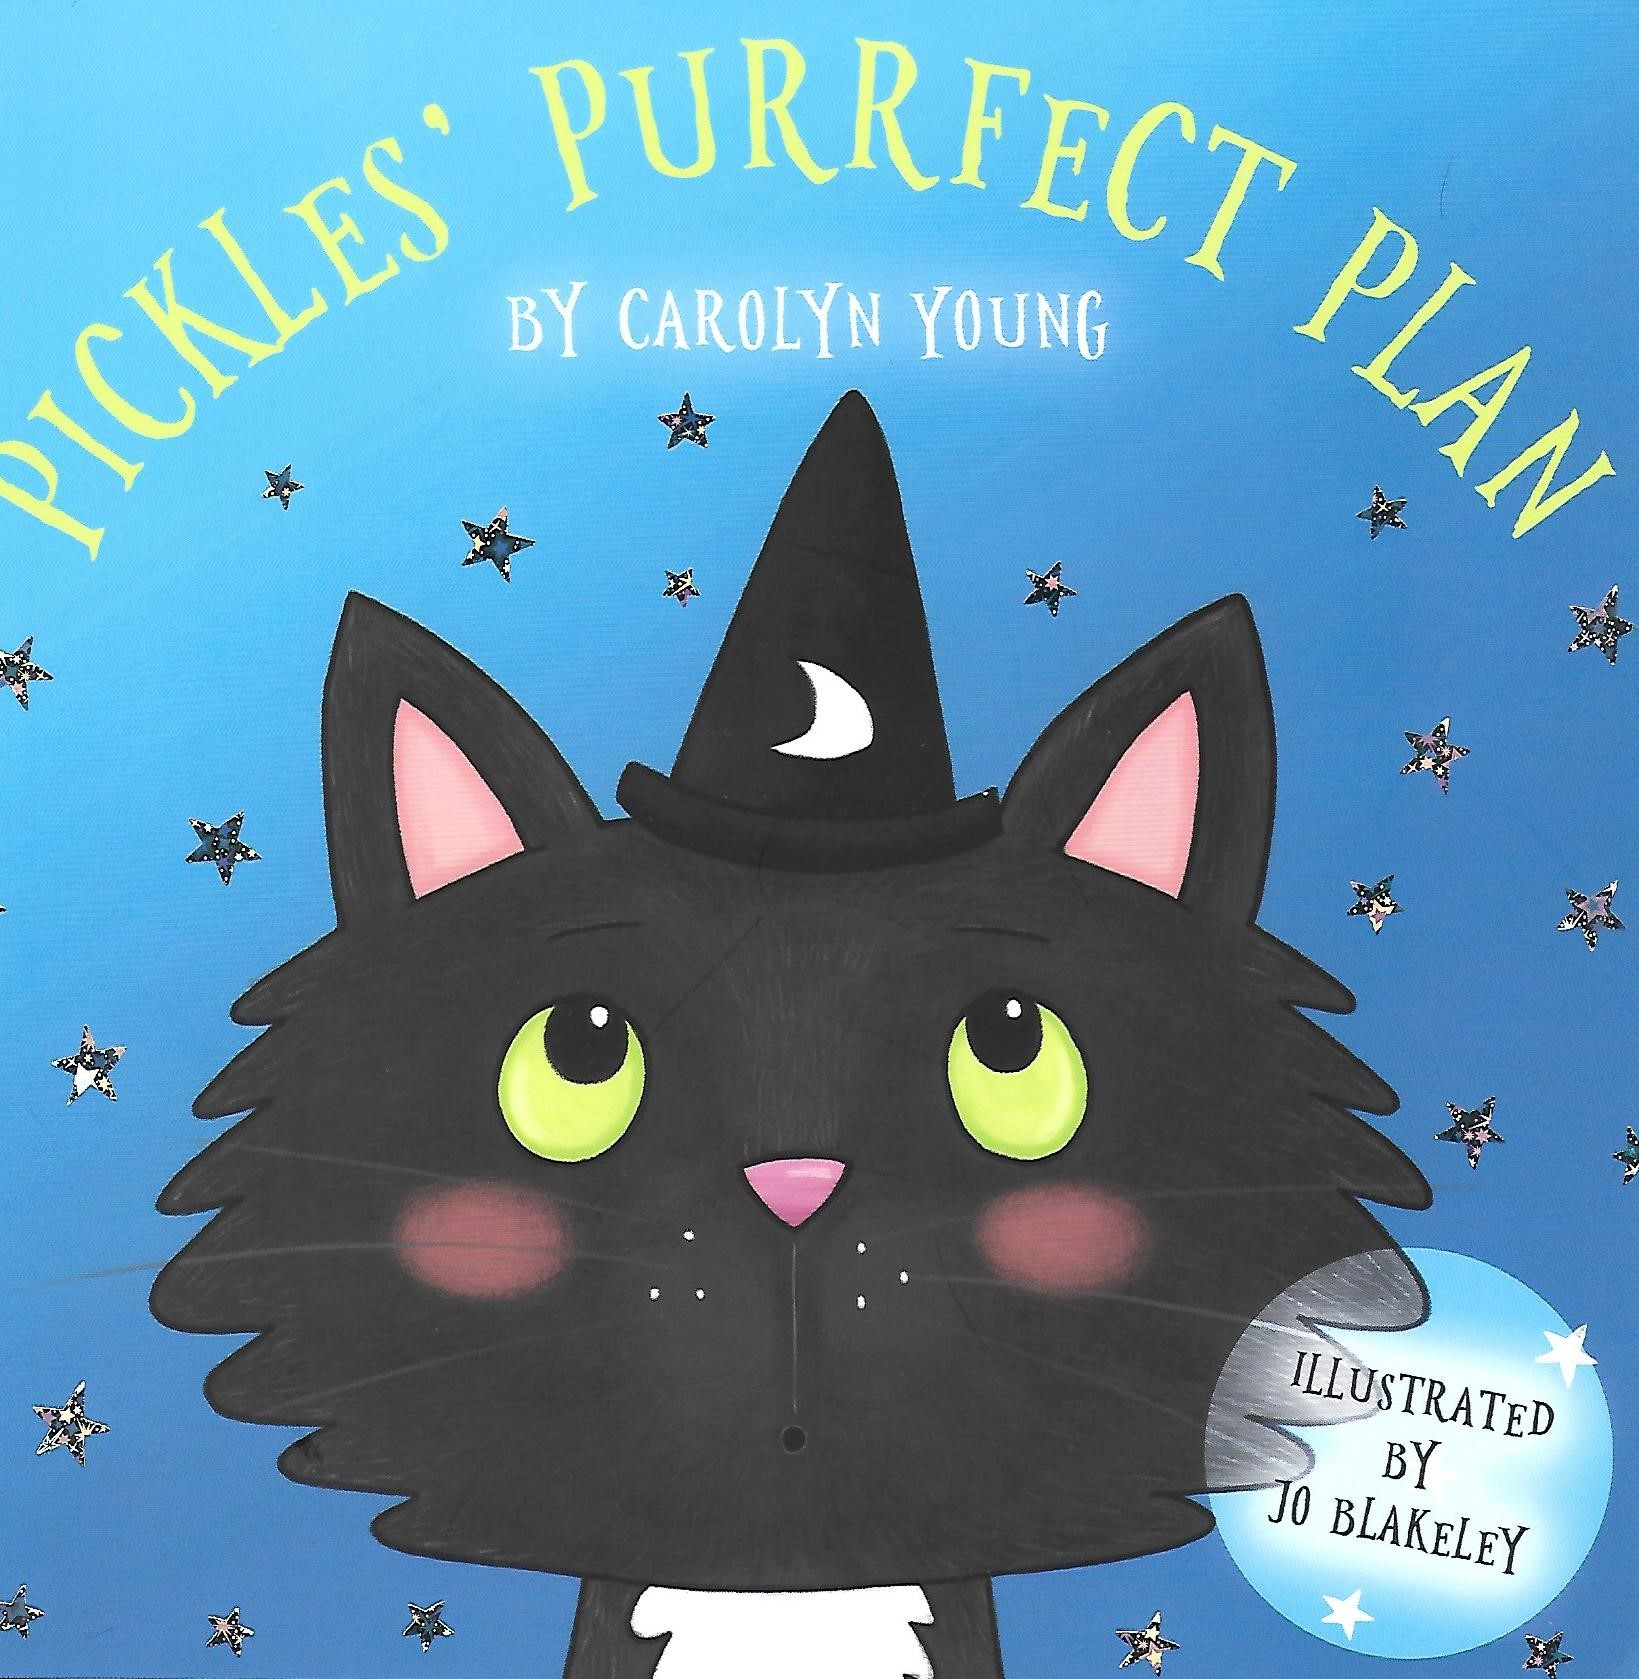 Pickles' Purrfect Plan by Carolyn Young